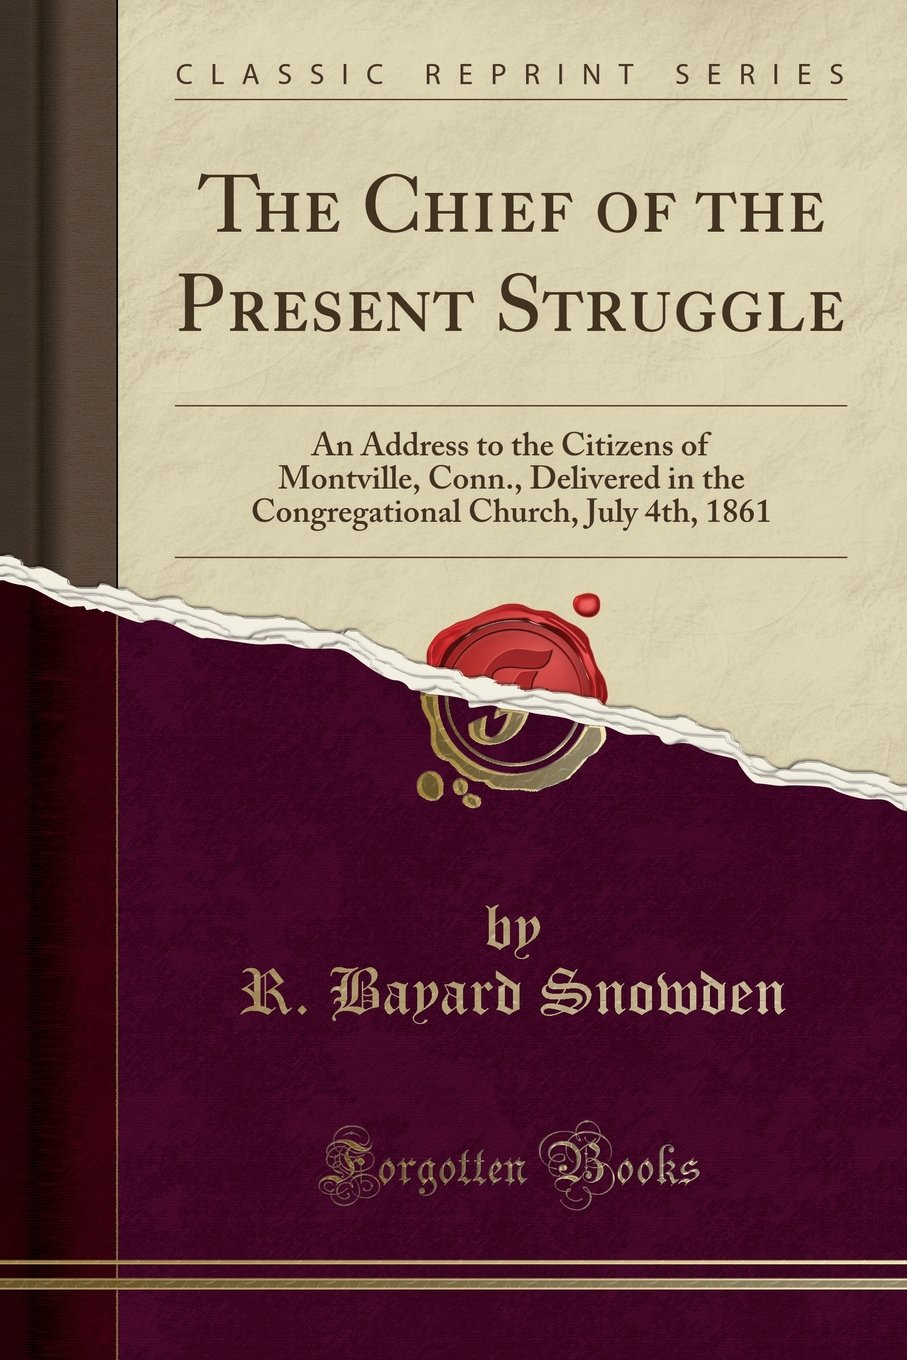 Download The Chief of the Present Struggle: An Address to the Citizens of Montville, Conn., Delivered in the Congregational Church, July 4th, 1861 (Classic Reprint) PDF